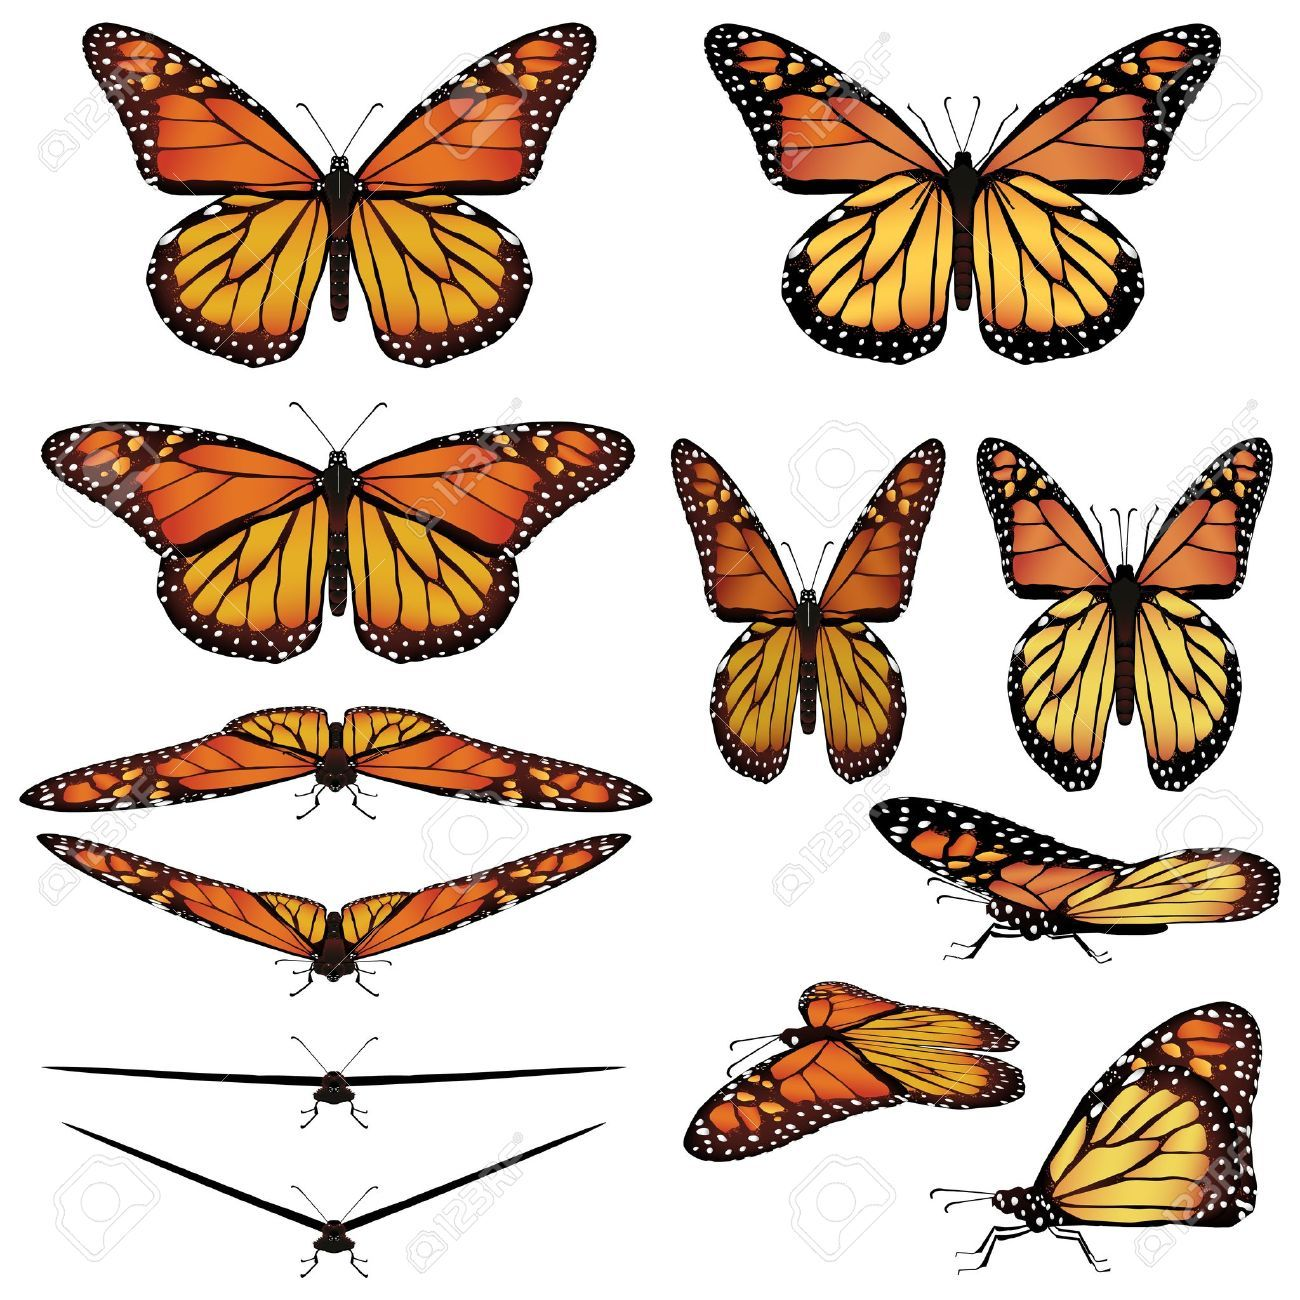 medium resolution of monarch butterfly google search